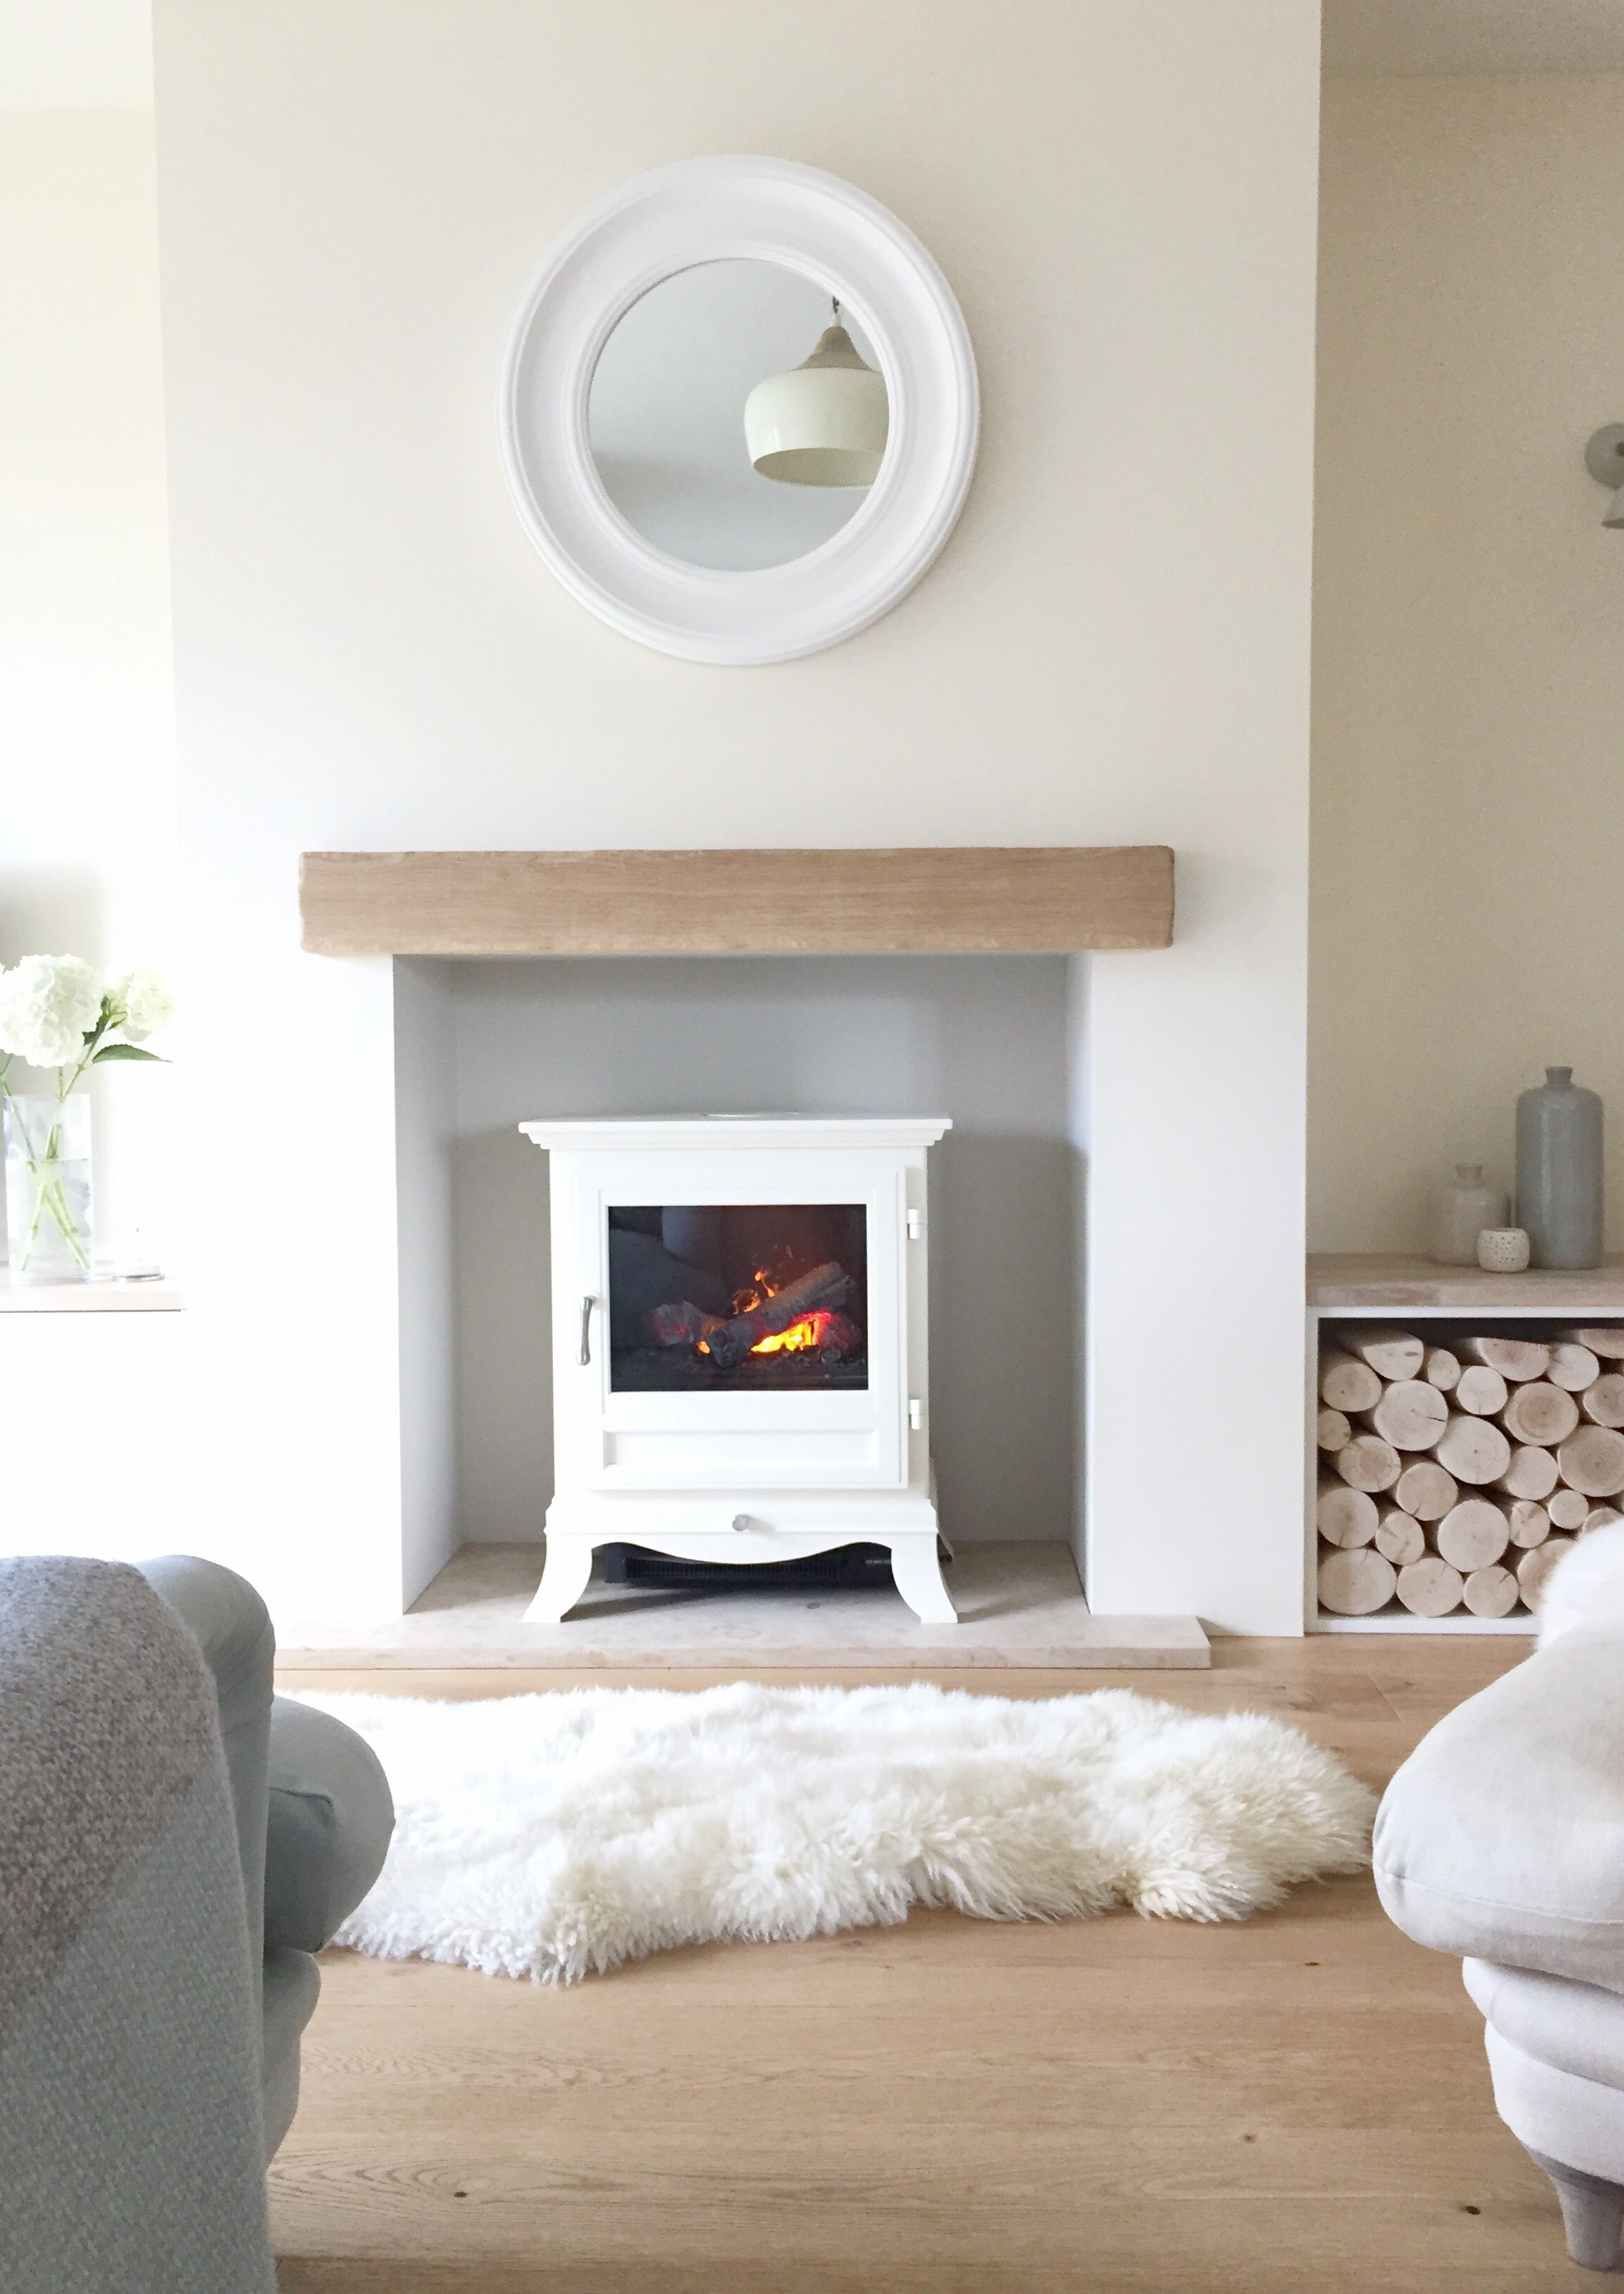 Cosy Living Room With Log Burner Modern Pop Ceiling Designs For Fireplace Sheepskin Rugs Home And Interior